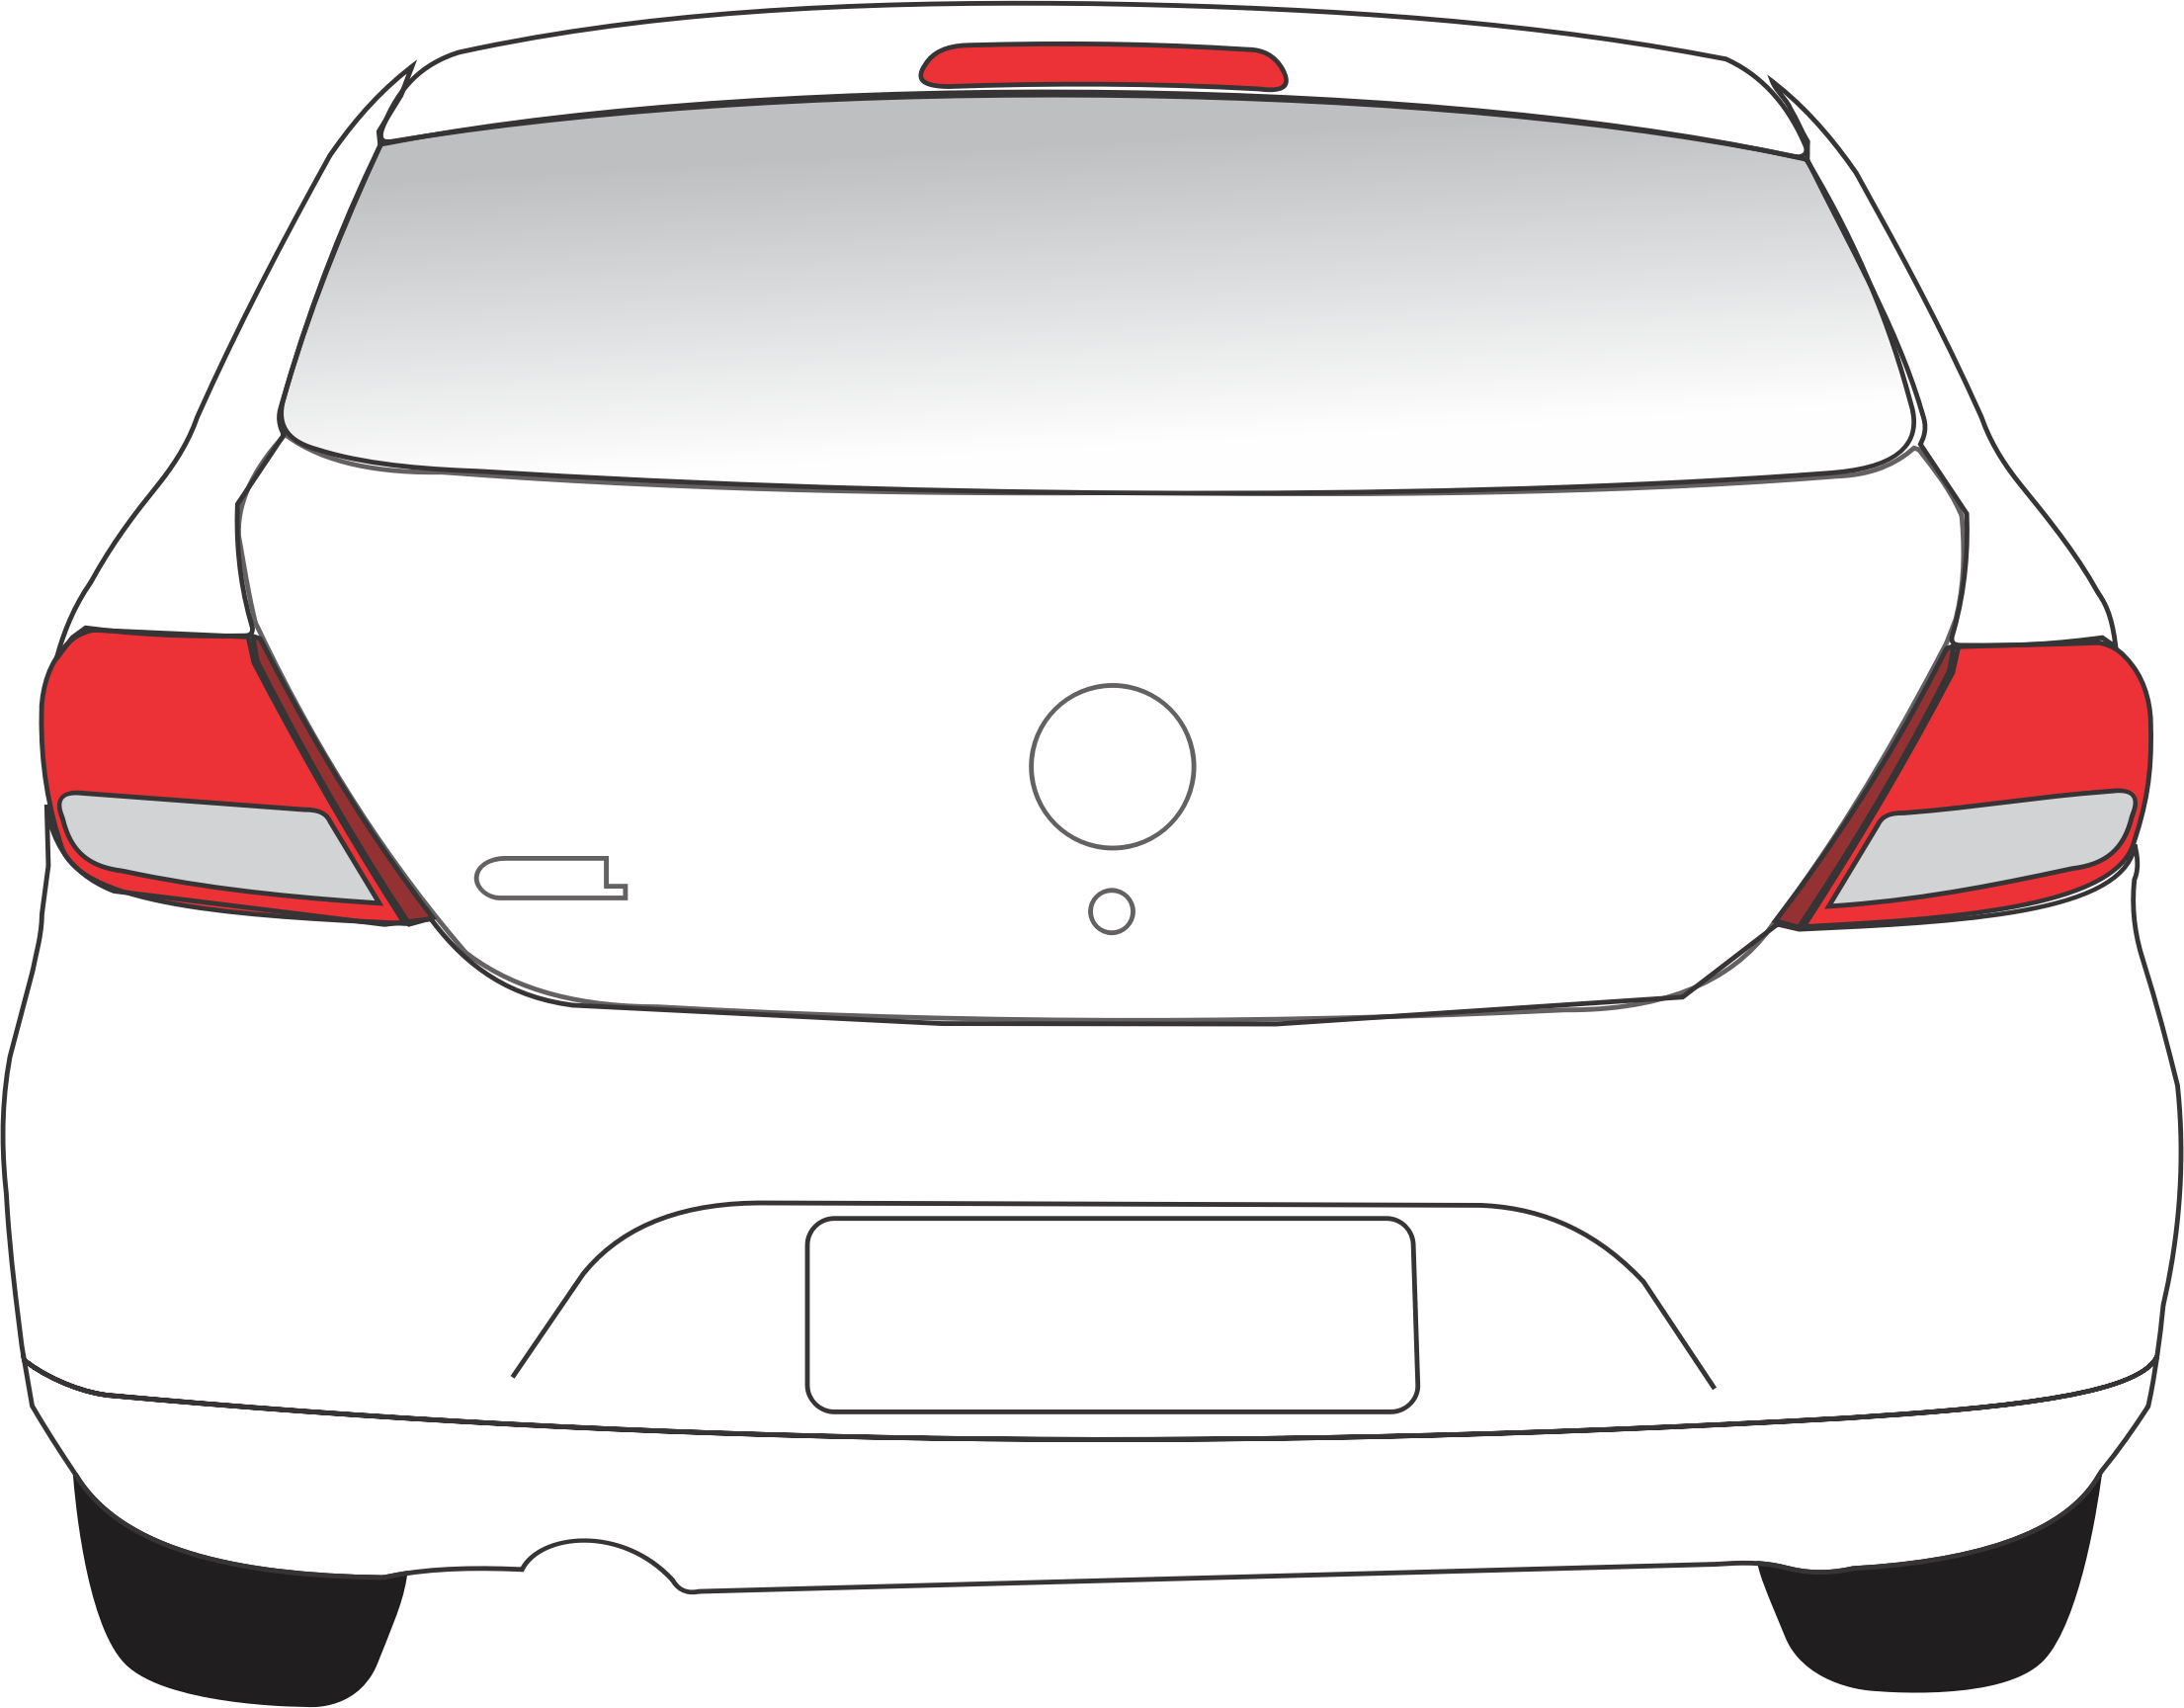 Back clipart car. View icons png free